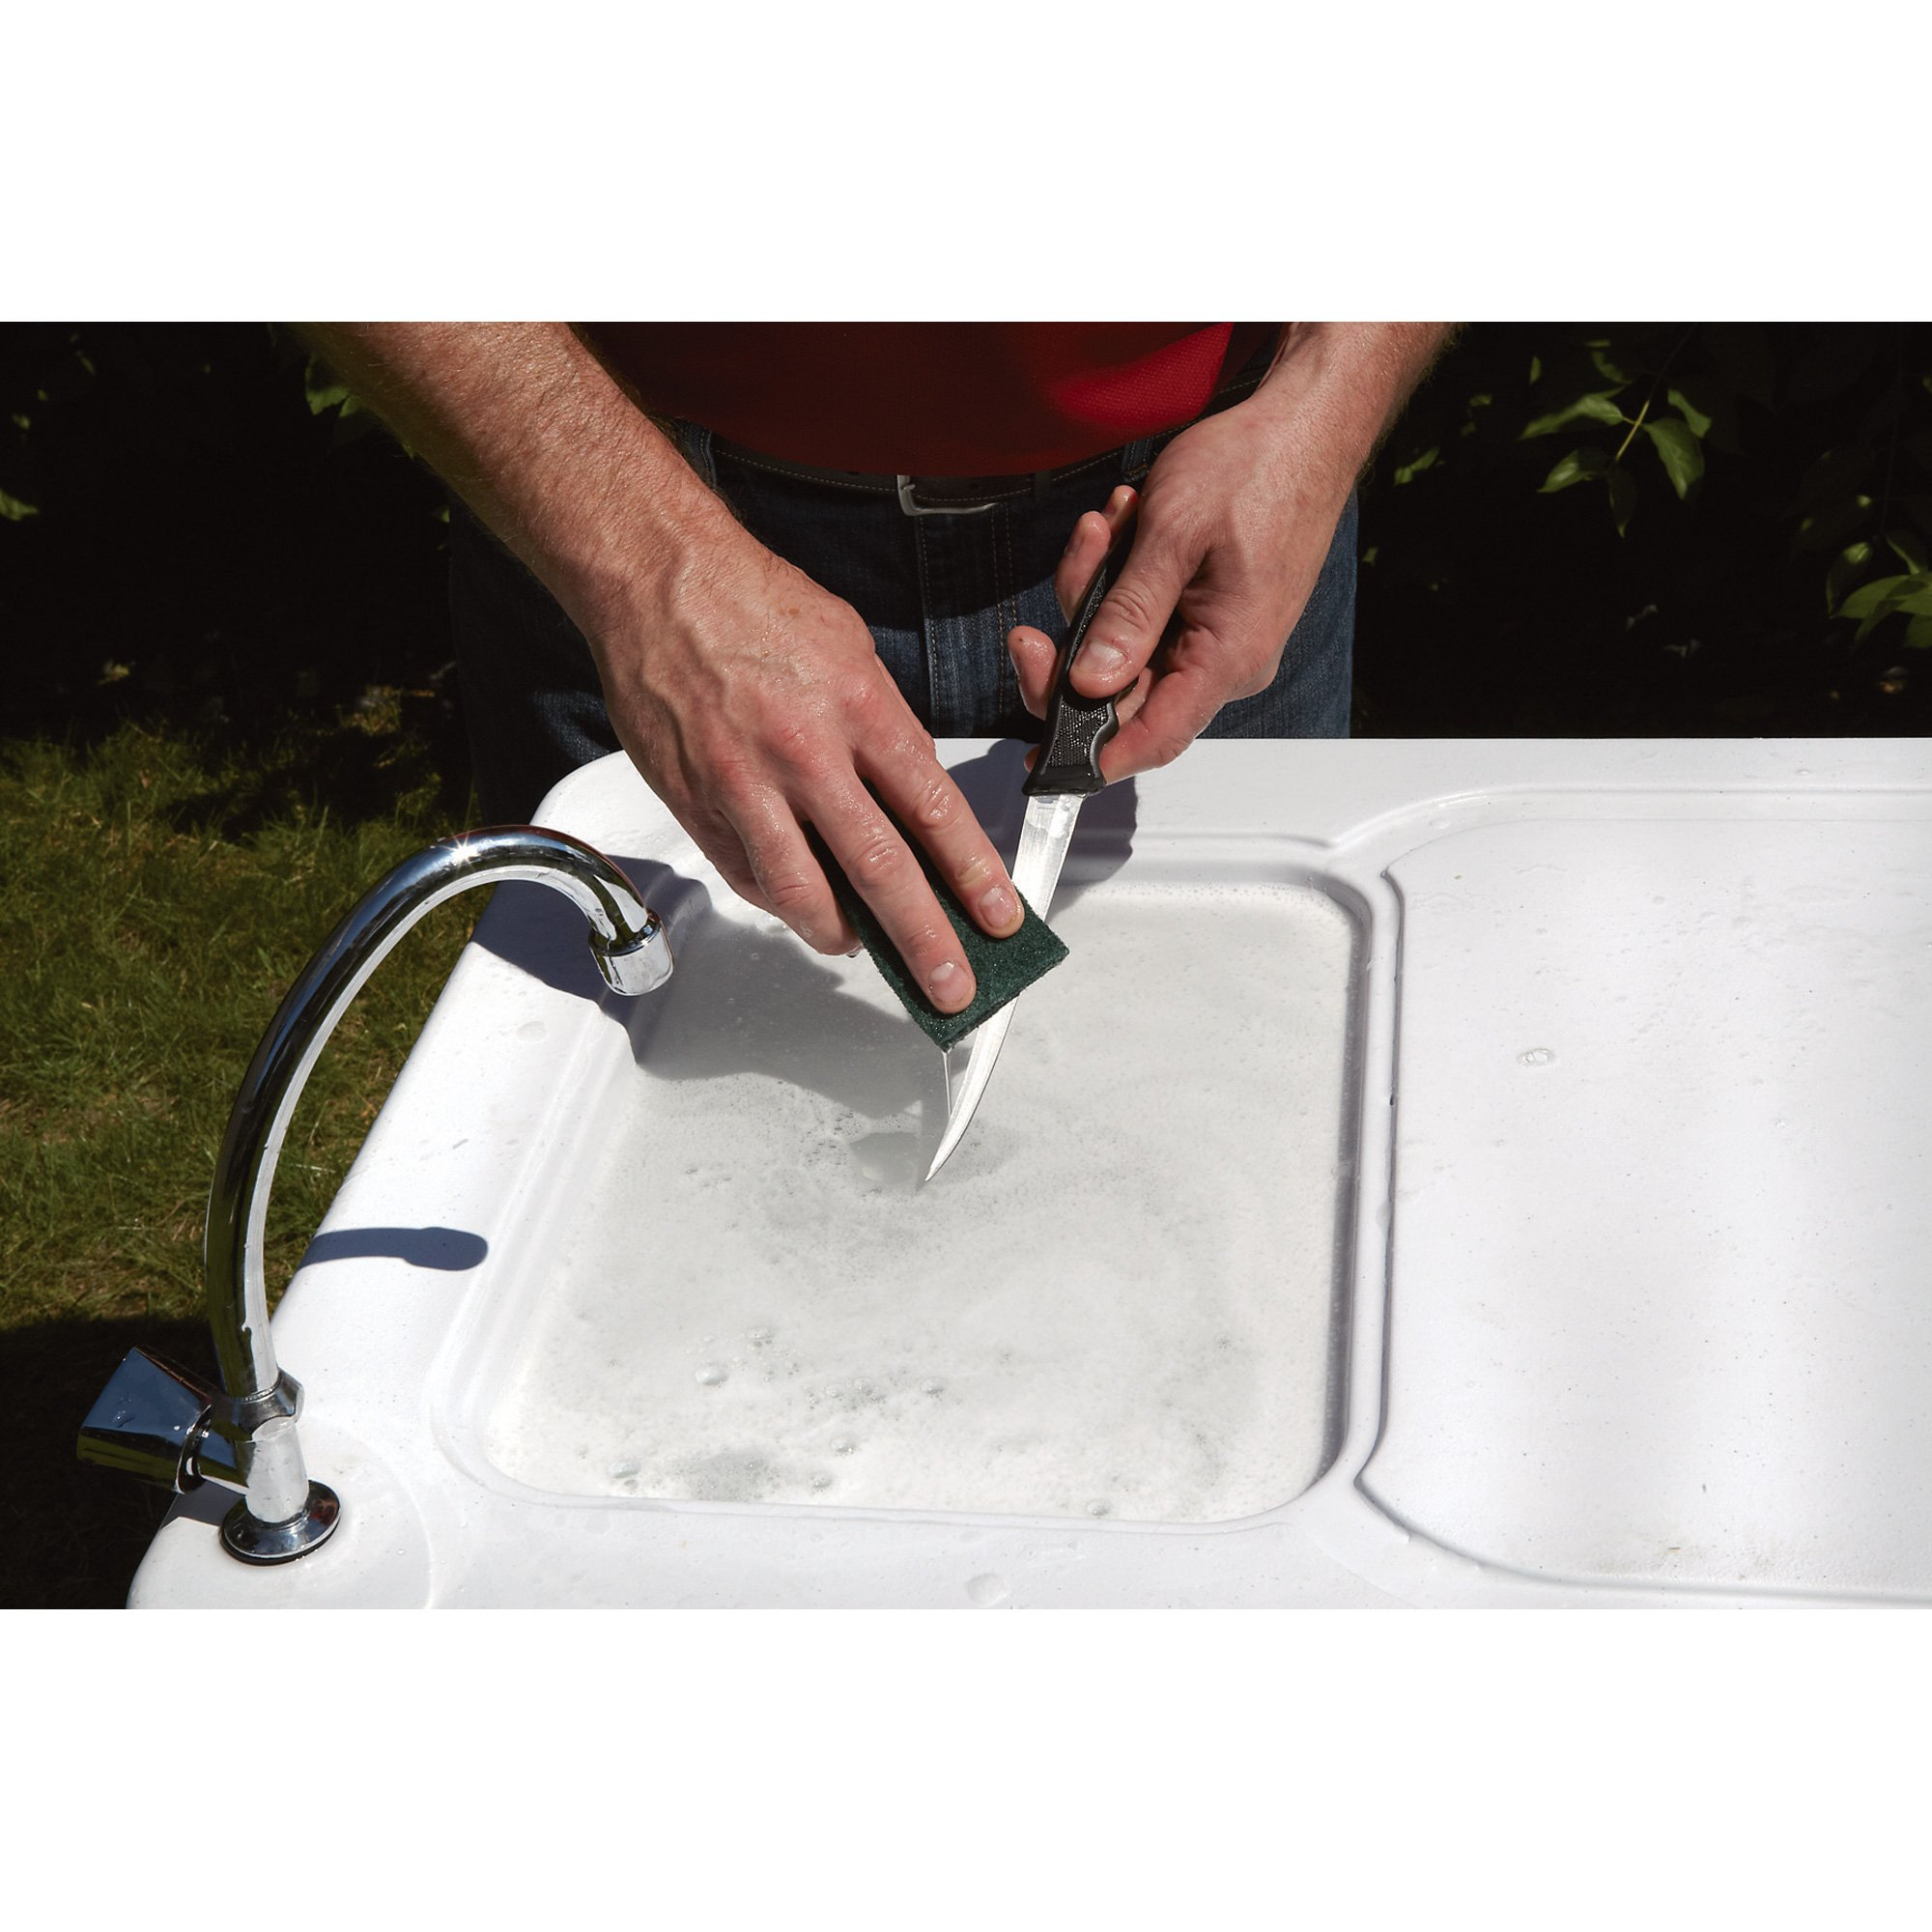 Kotulas Fish Cleaning Camp Table with Faucet by Kotulas